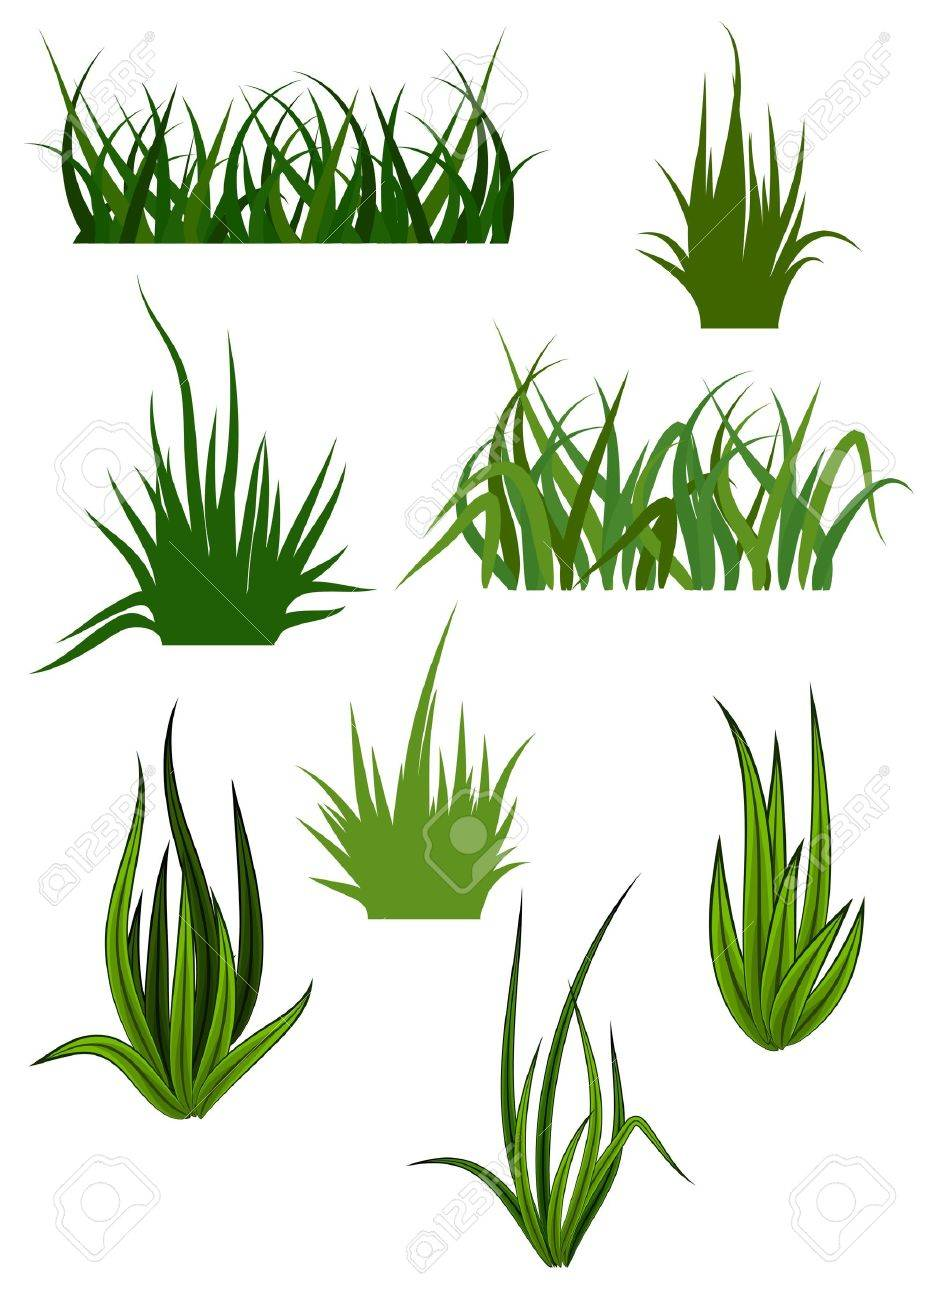 Green grass elements for design and decorate Stock Vector - 6554215